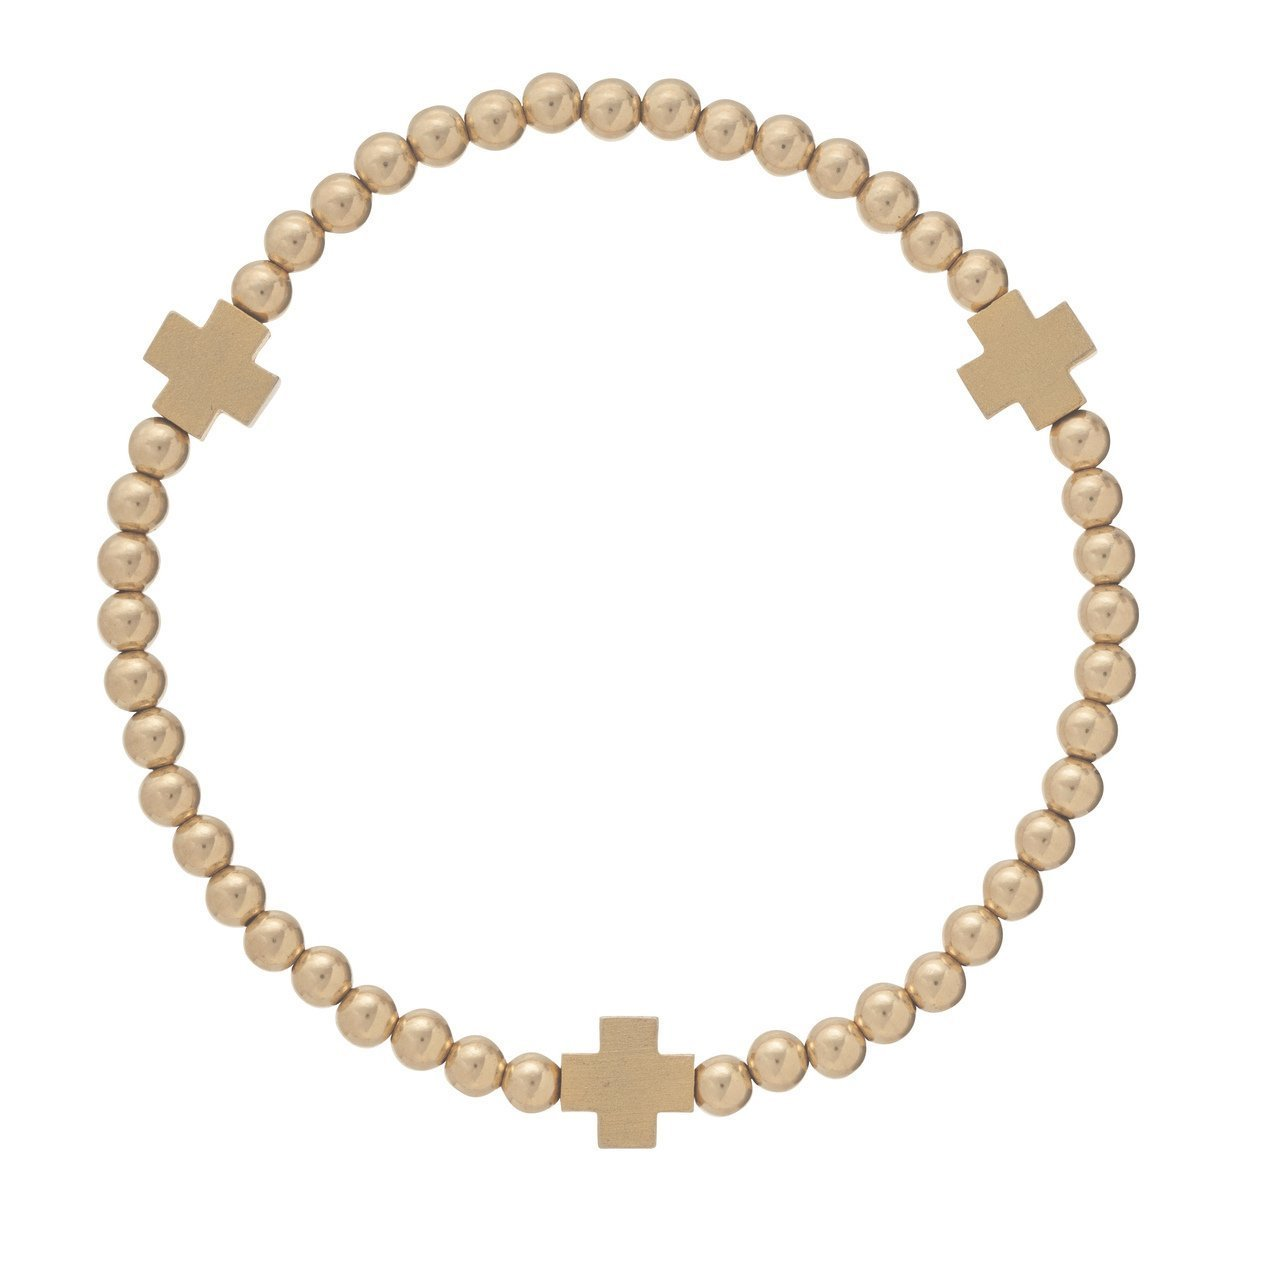 SIGNATURE CROSS MATTE GOLD PATTERN 4MM BEAD BRACELET - Molly's! A Chic and Unique Boutique